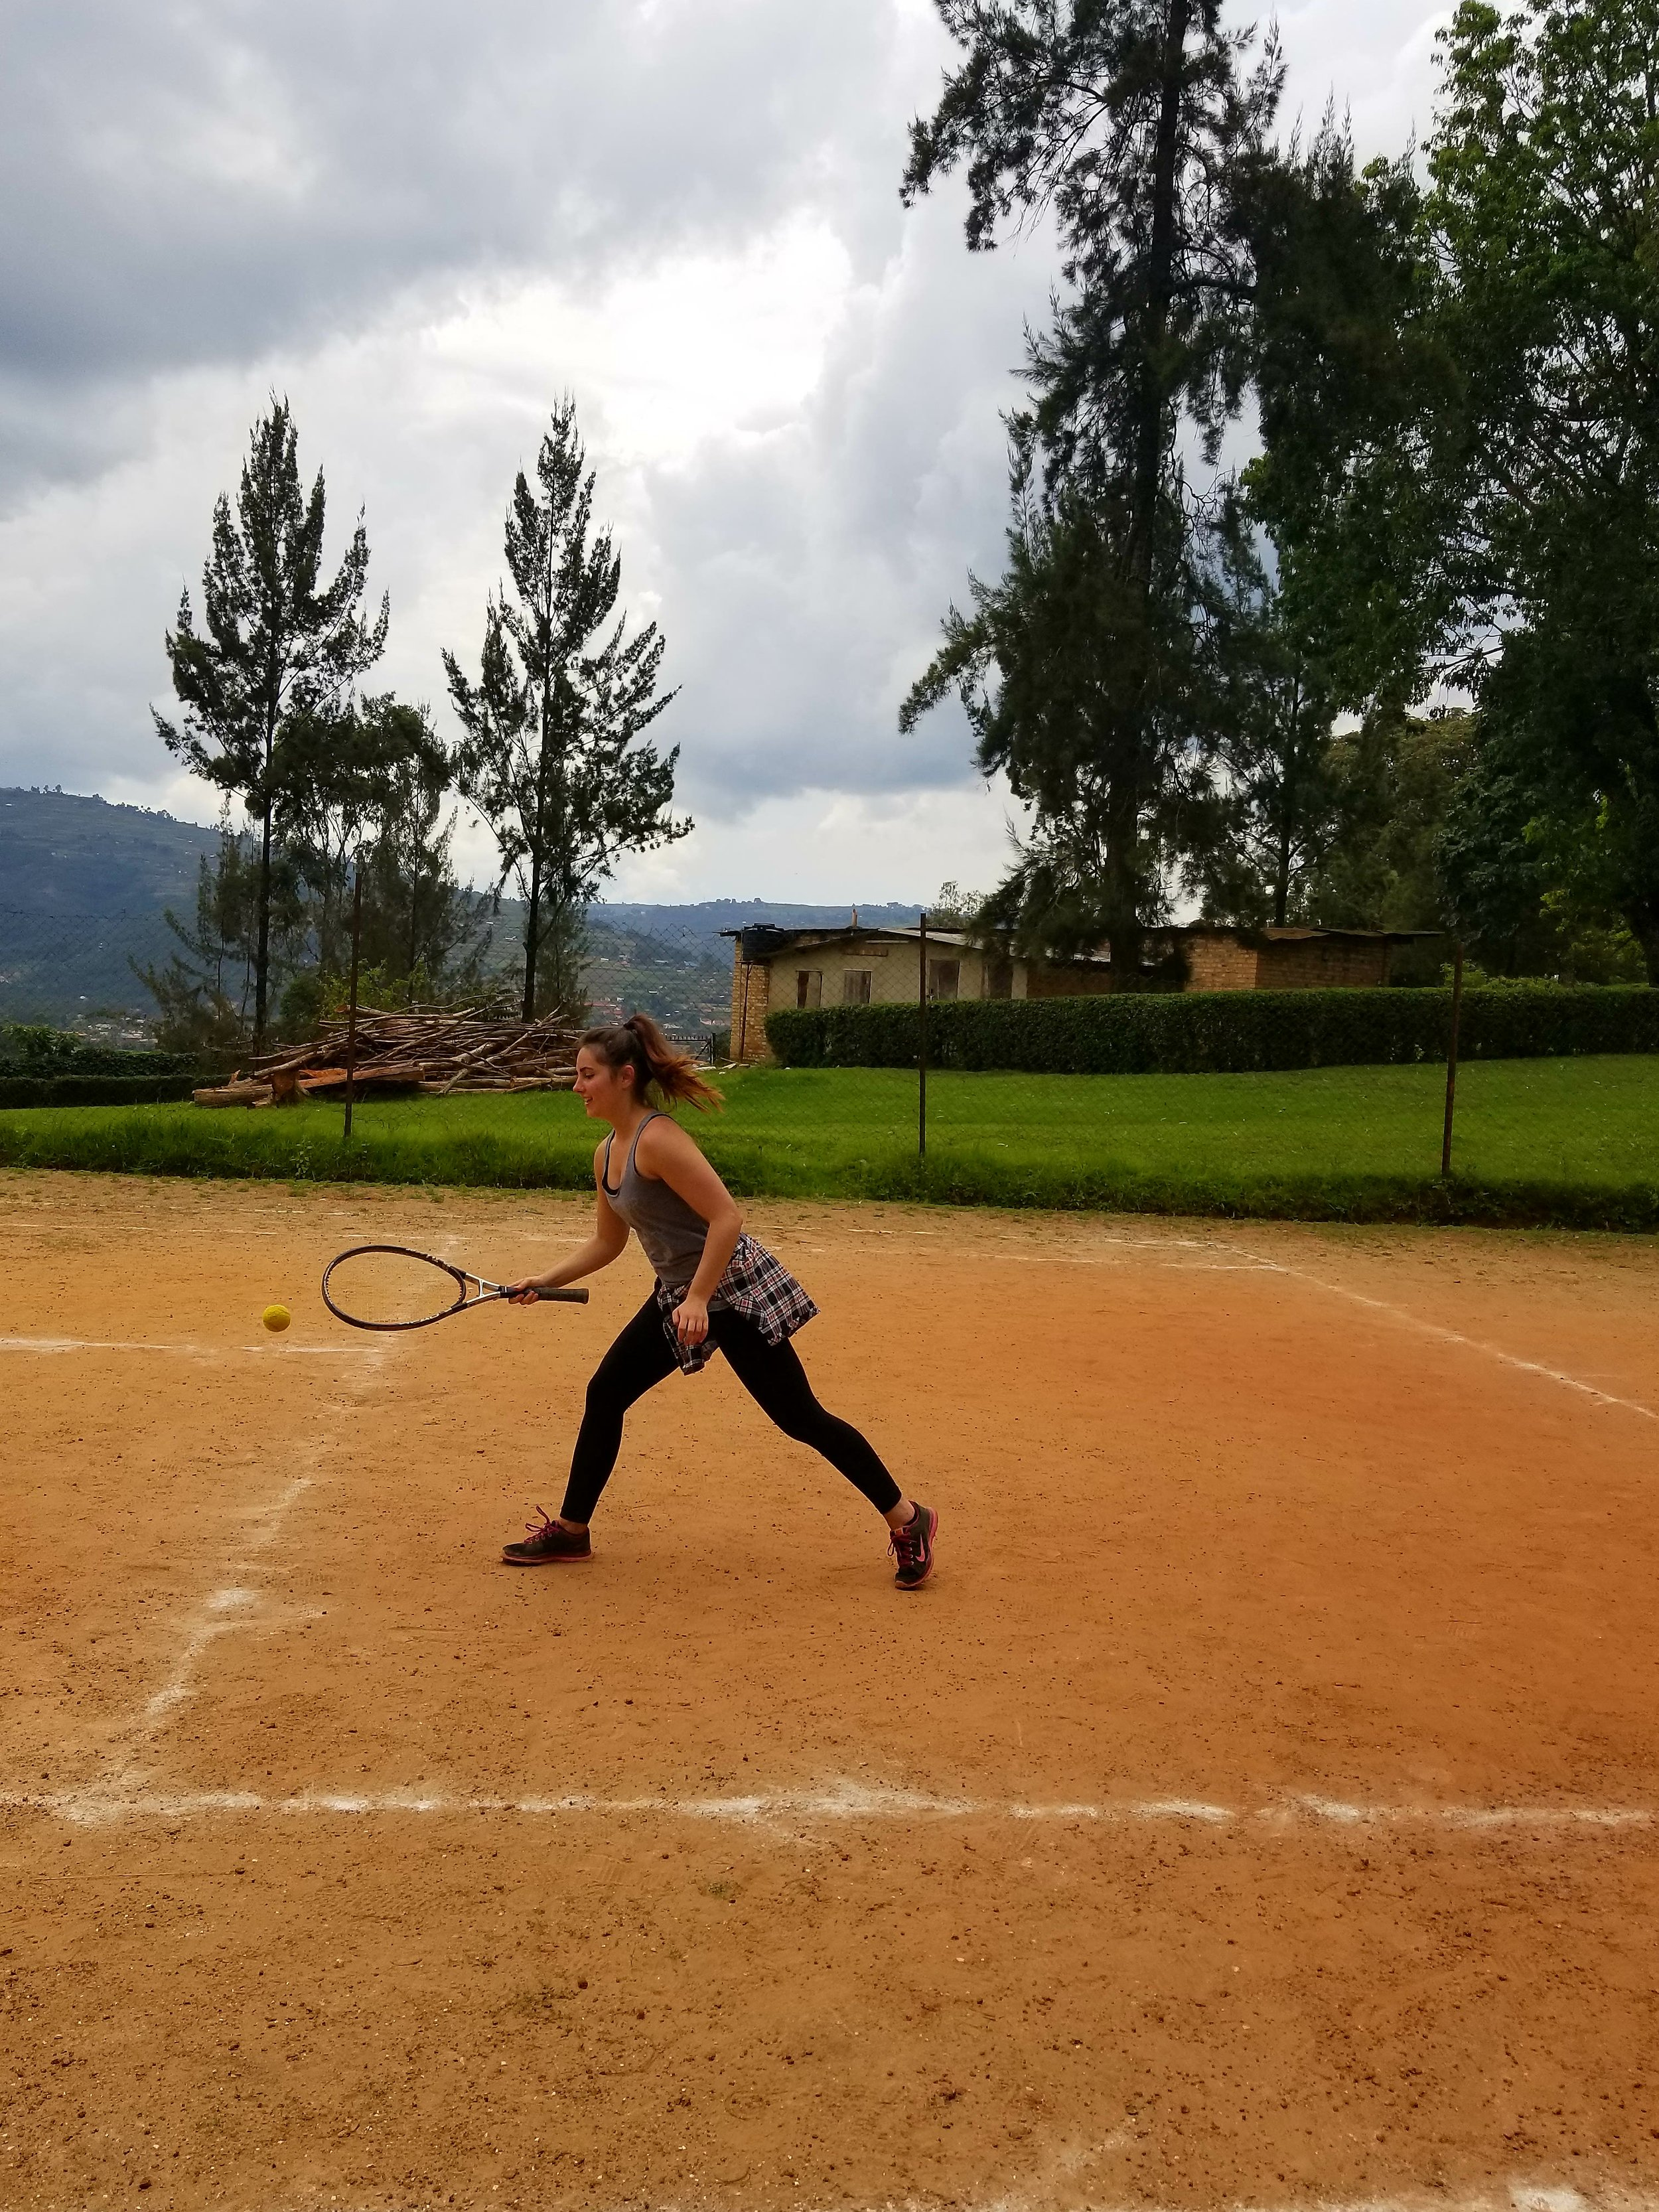 Learning the game of tennis, I am now a big fan! Who wants to play when I return home?